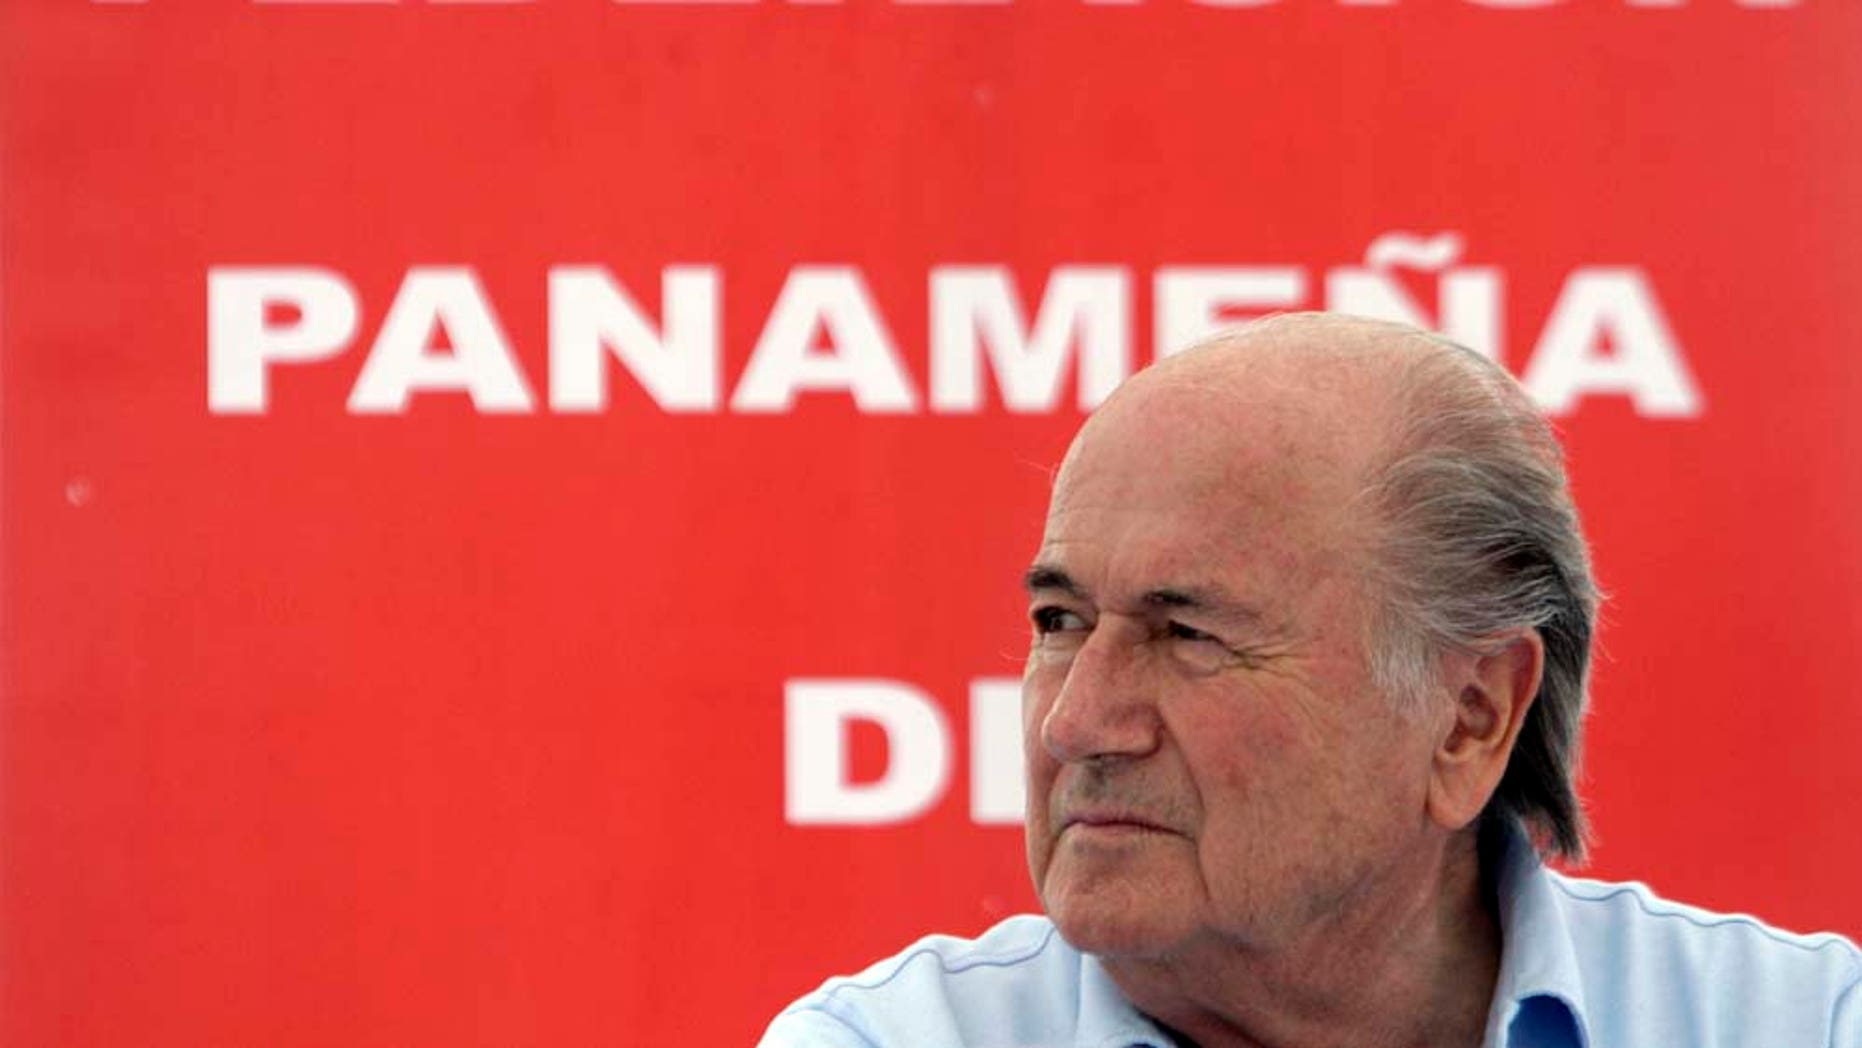 FIFA President Joseph Blatter looks on during a groundbreaking ceremony in Panama City, Saturday April 16, 2011. On the last day of his Central American tour Blatter attended the groundbreaking for the headquarters of the Panamanian Football Federation, the opening of a U-13 soccer league and met with Panama's President Ricardo Martinelli. (AP Photo/Arnulfo Franco)